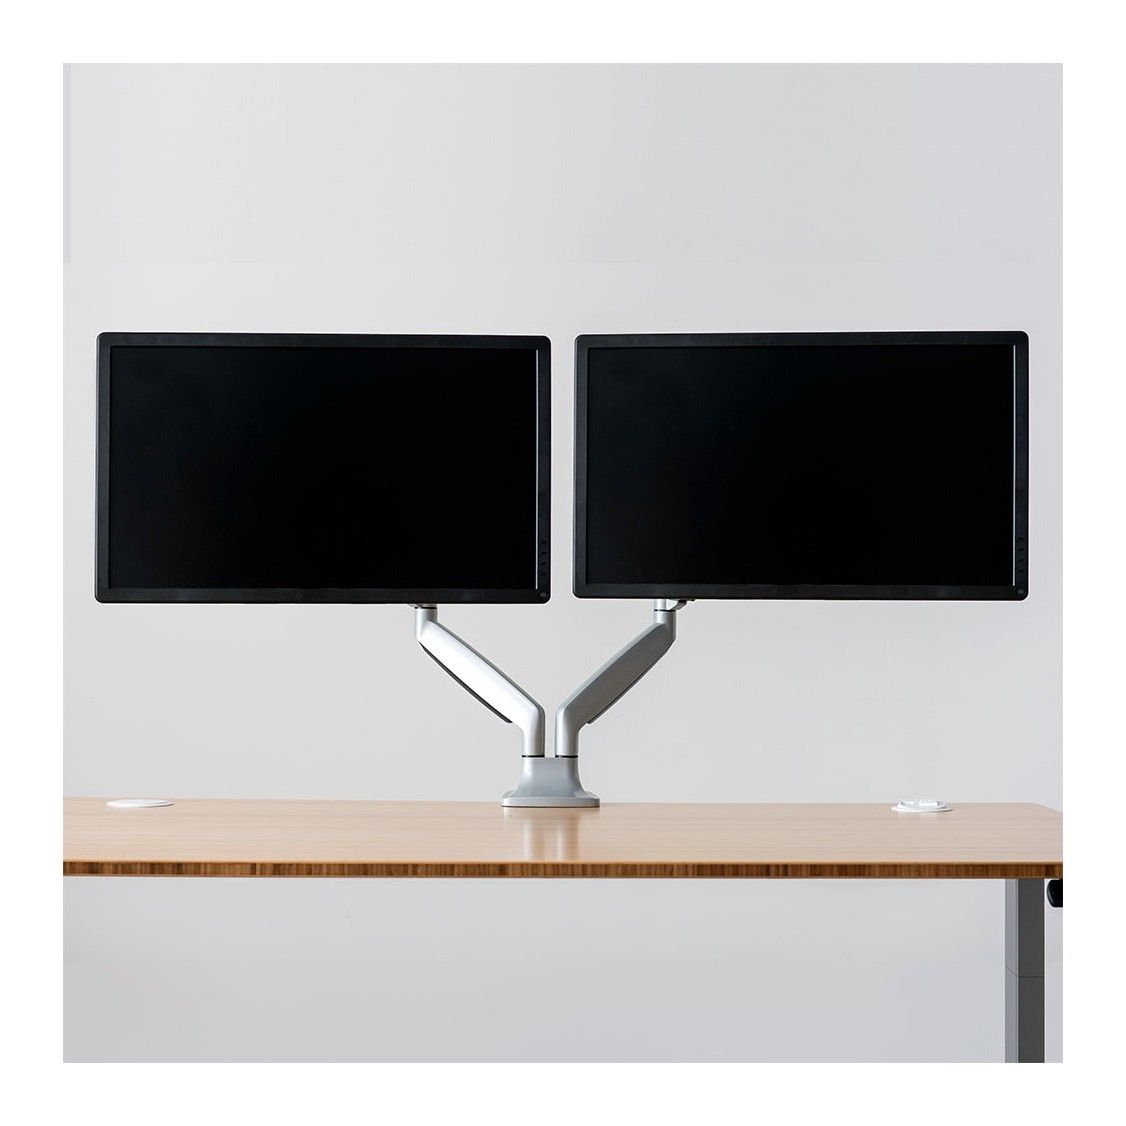 Description of workrite willow monitor arm willow is specifically - Jarvis Dual Monitor Arm